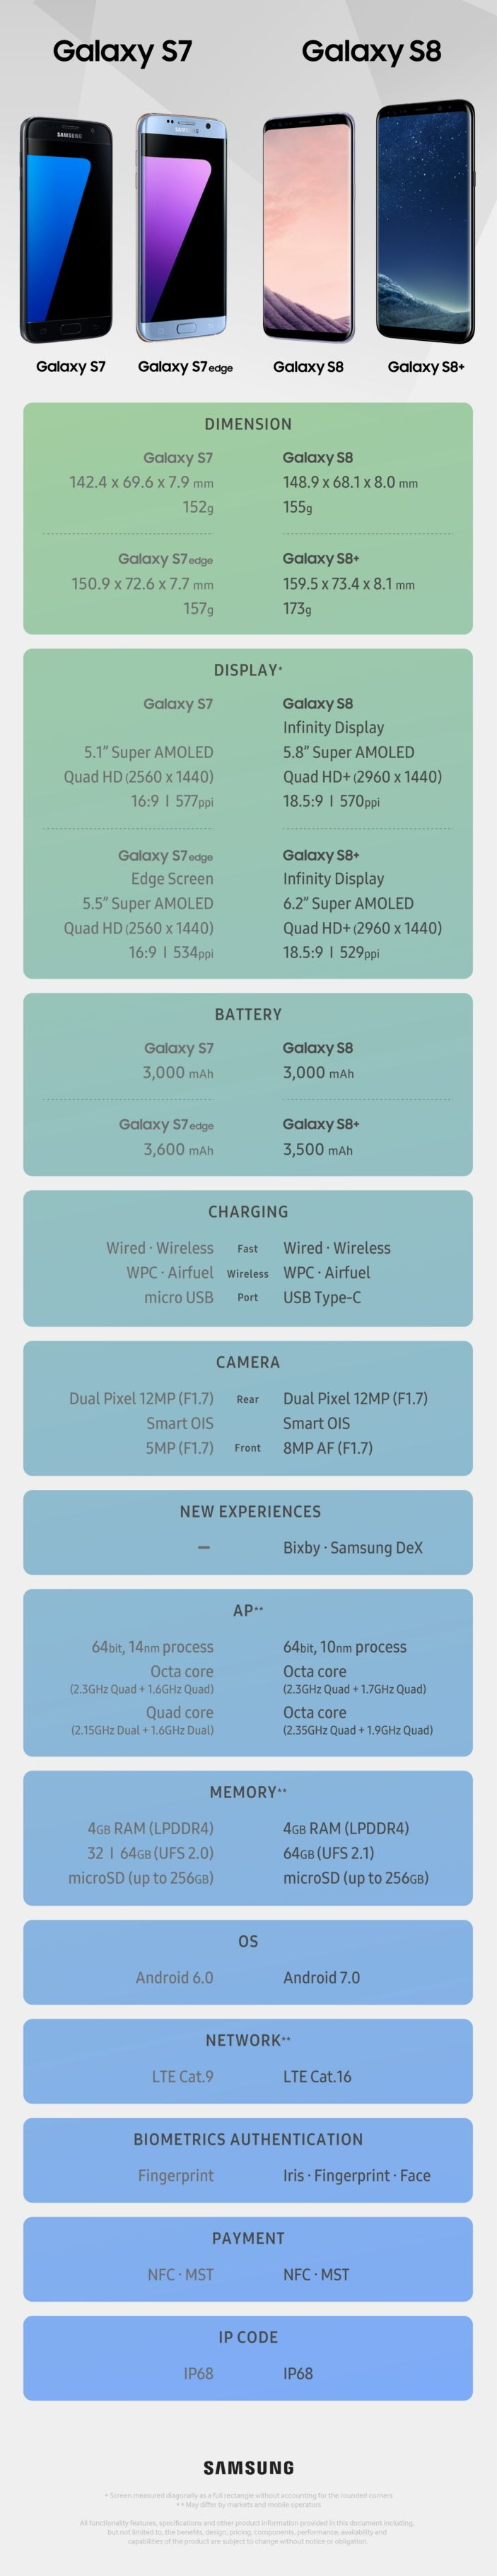 pare end to end specs of Samsung Smartphone & and pick the best phone that suits your bud need and style